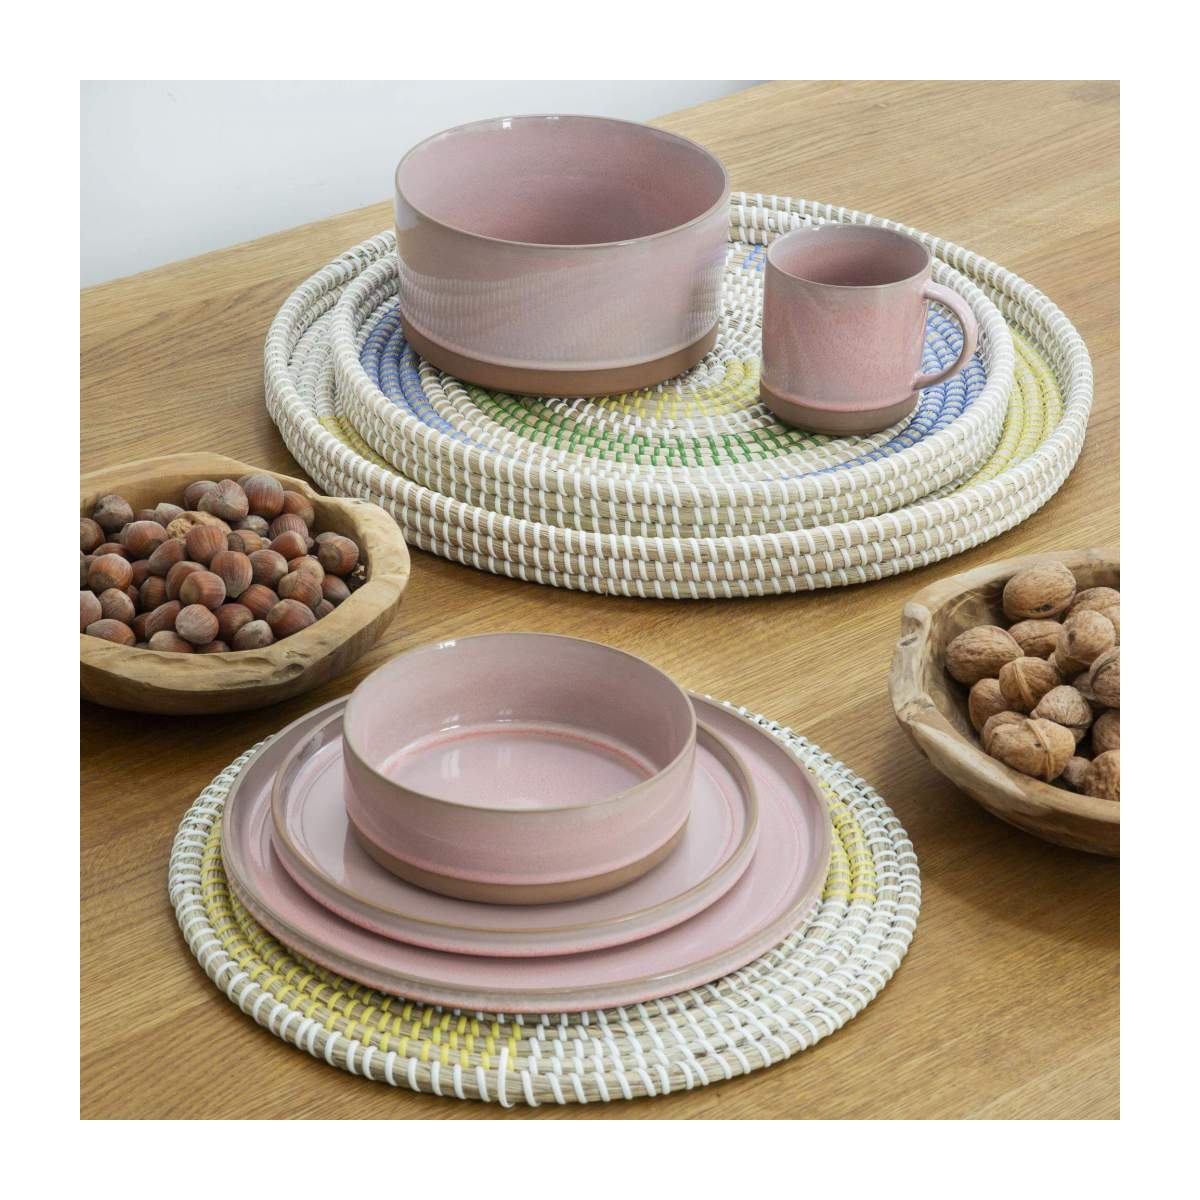 Set de table rond en jonc de mer - 35 cm n°2